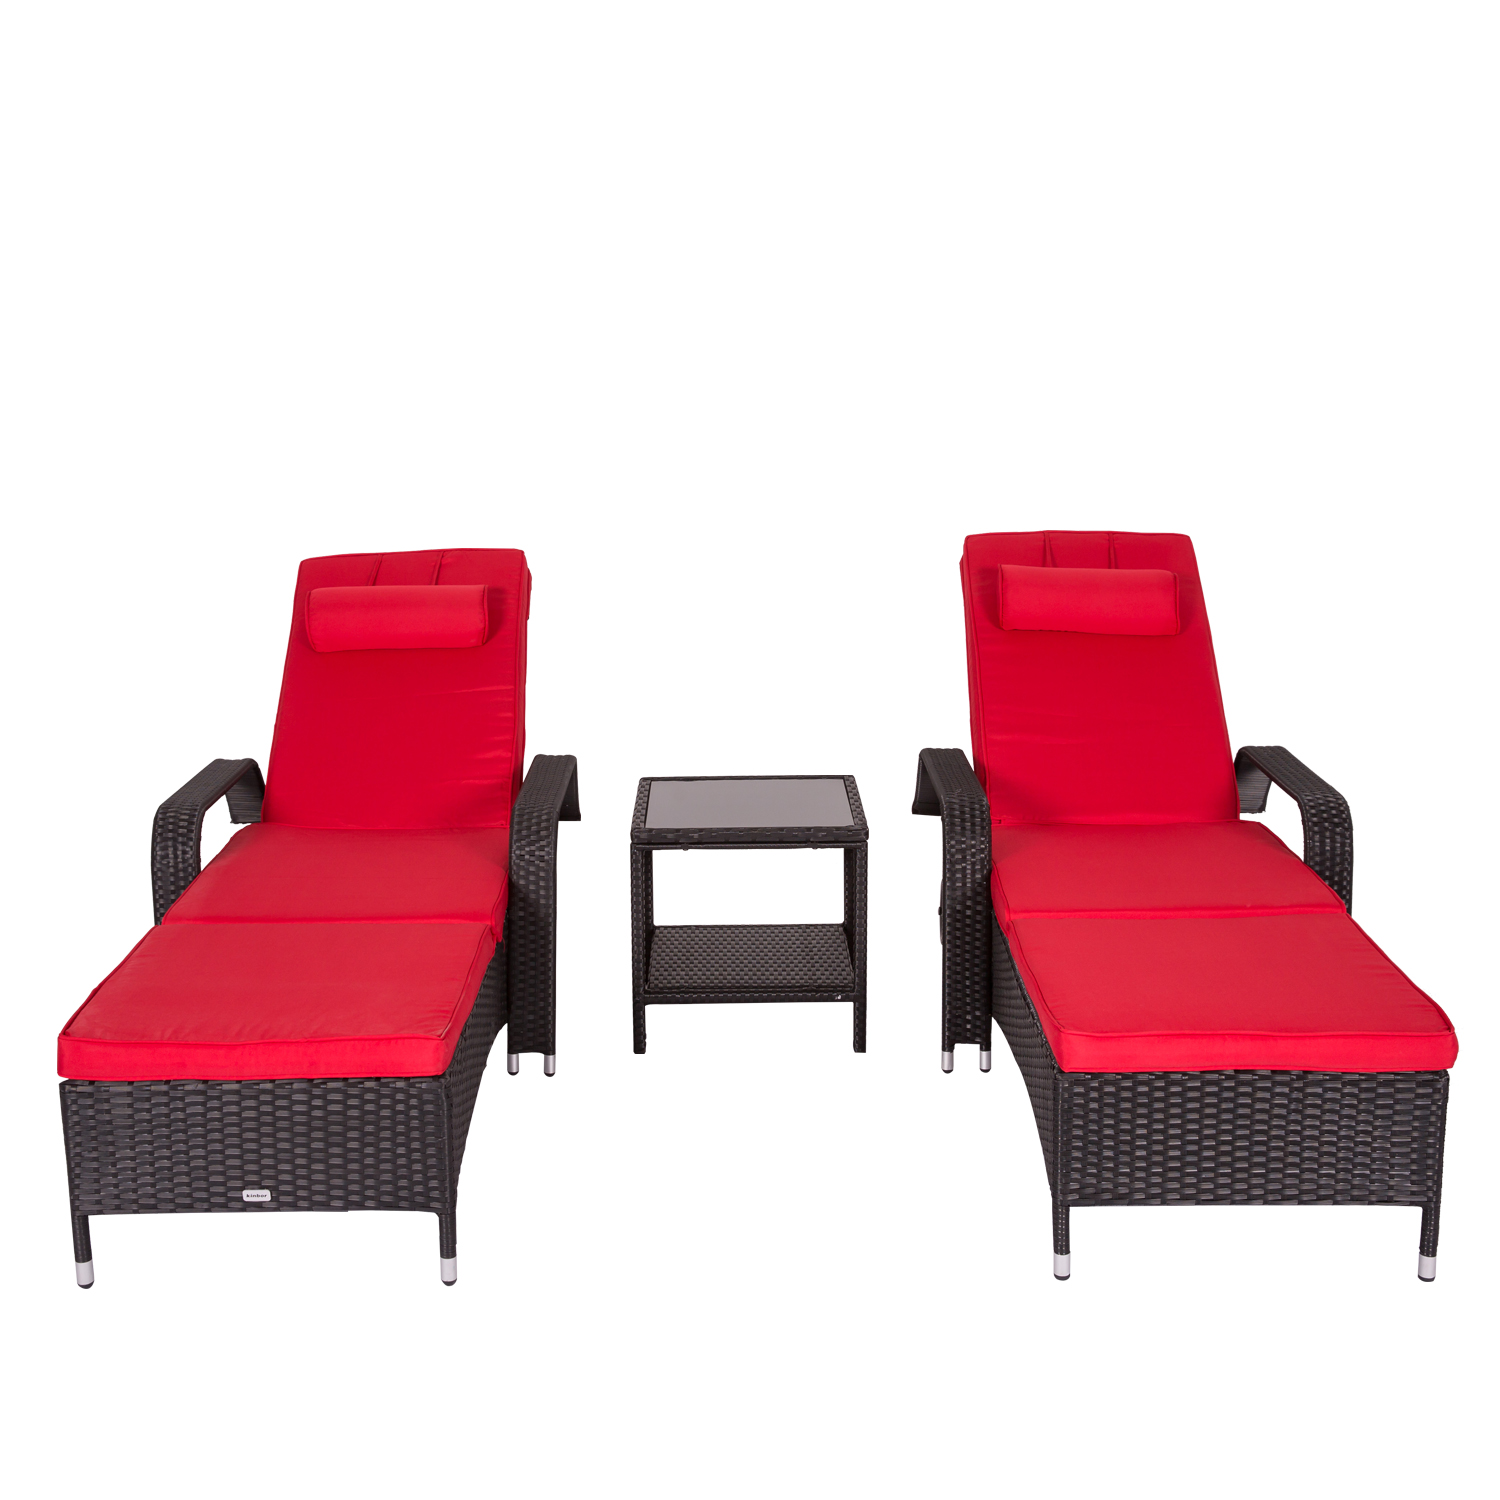 Kinbor 3pcs Outdoor Recliner Black Rattan Wicker Patio Chaise Lounge Sliding Tray Chair Table Furniture